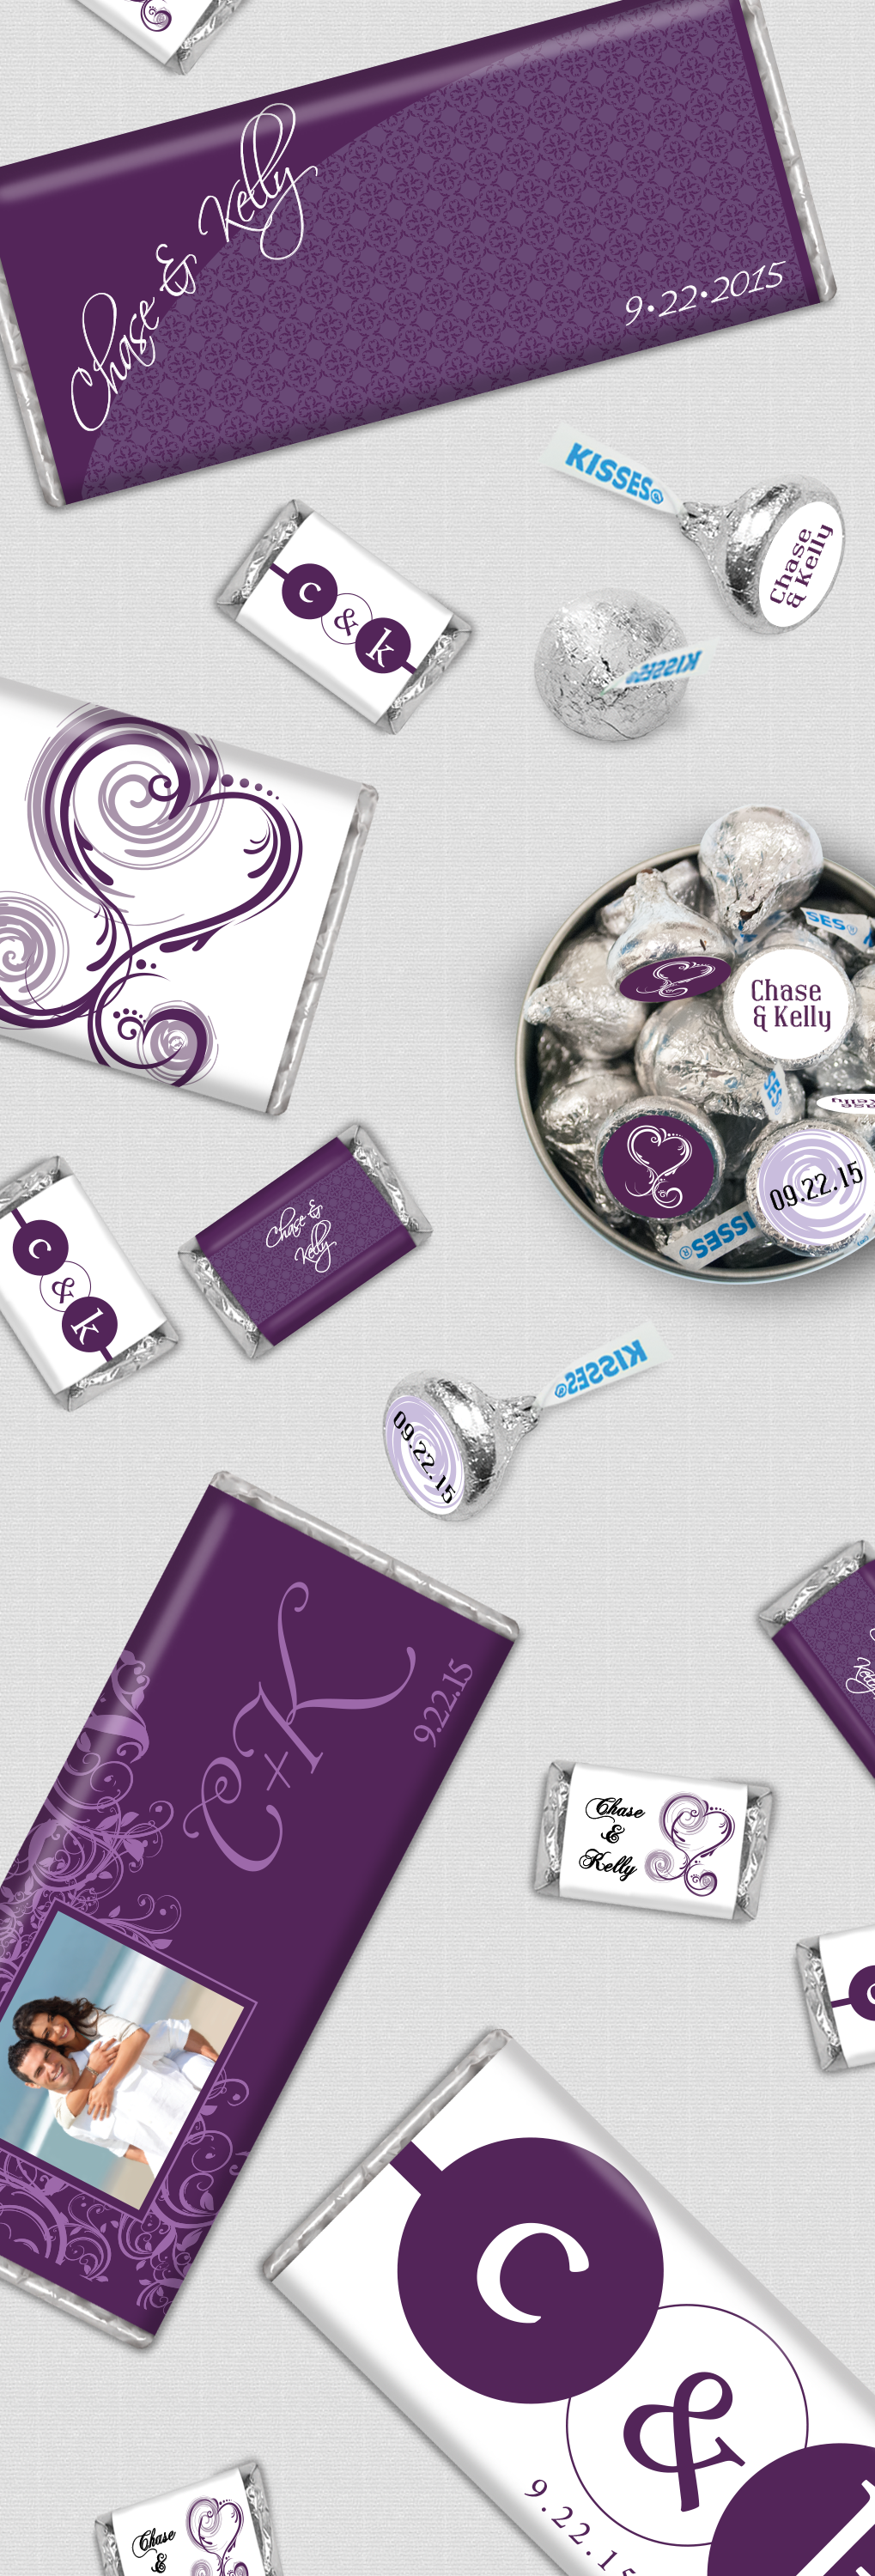 Eggplant Wedding Favor Ideas for Candy Buffet - Personalized ...